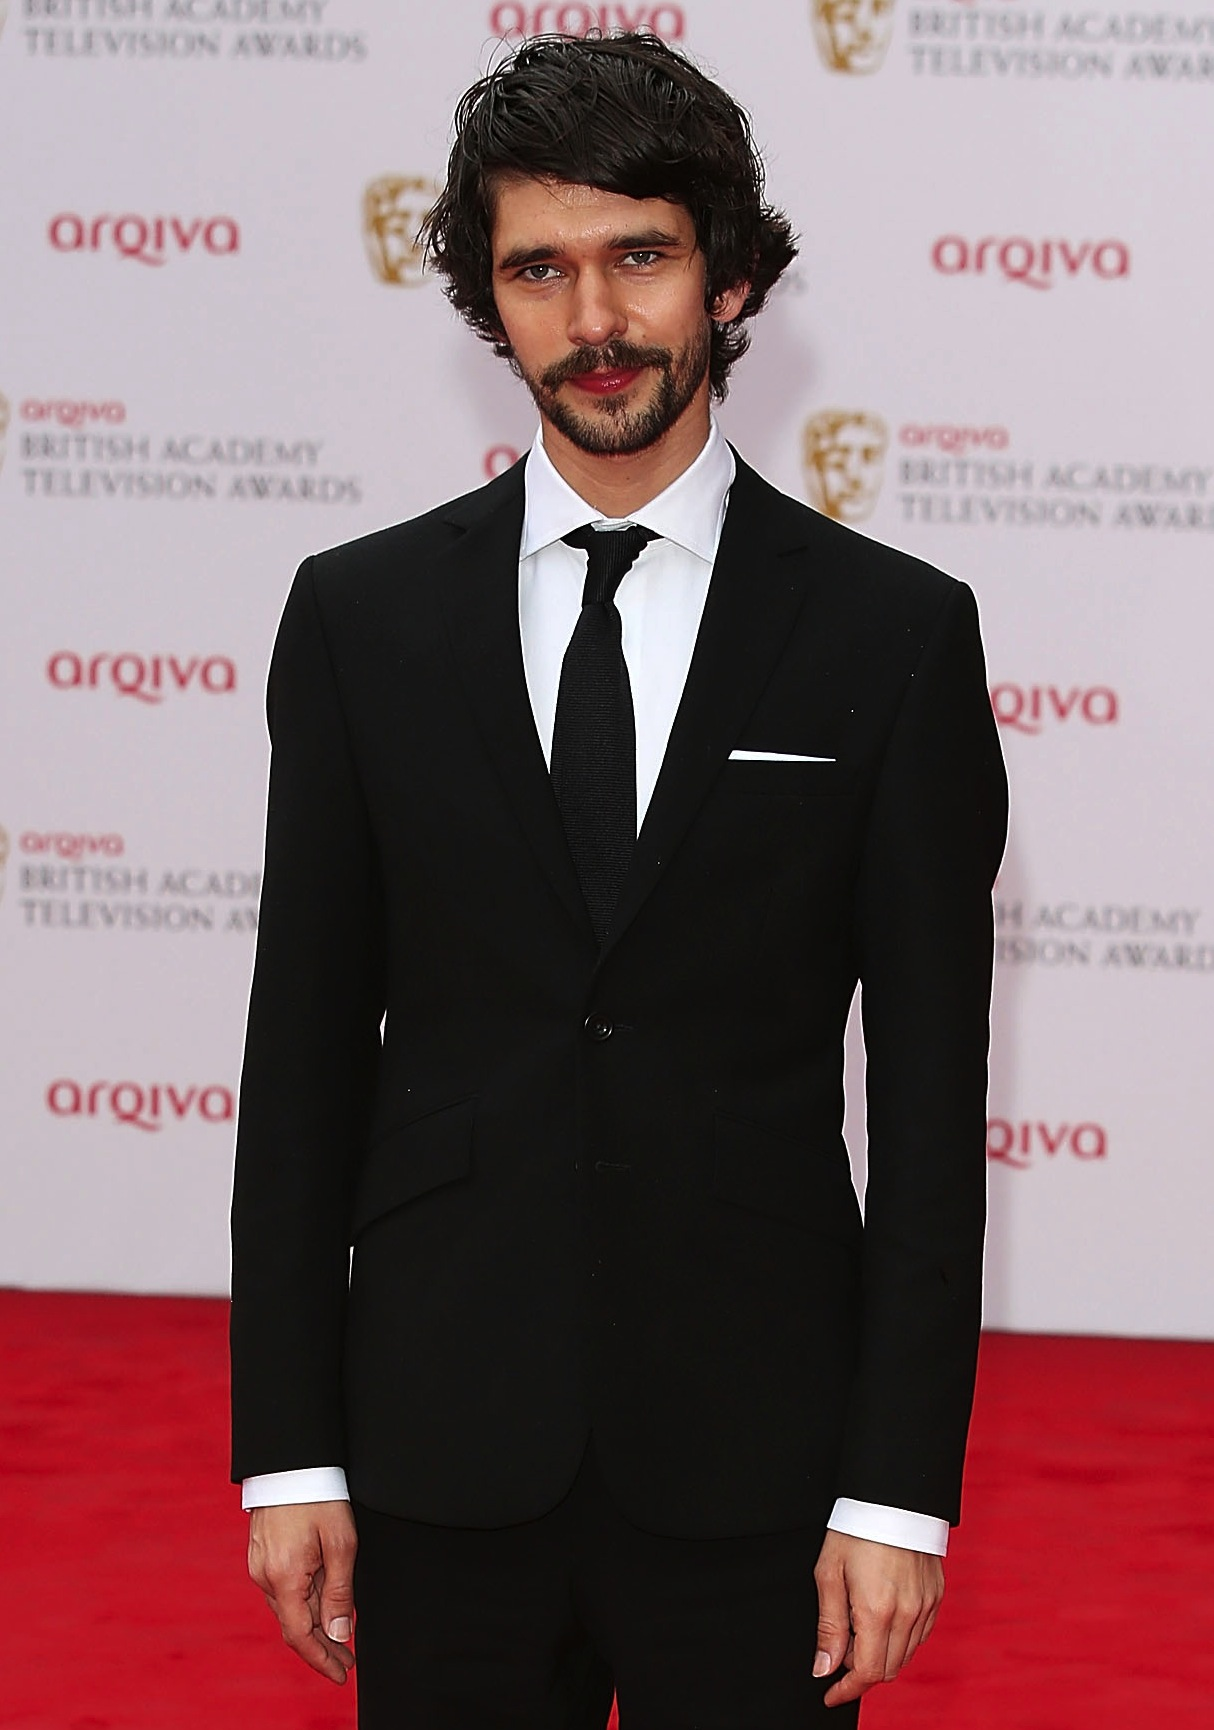 Ben Whishaw will play Freddie Mercury in a biopic about the rock group Queen.